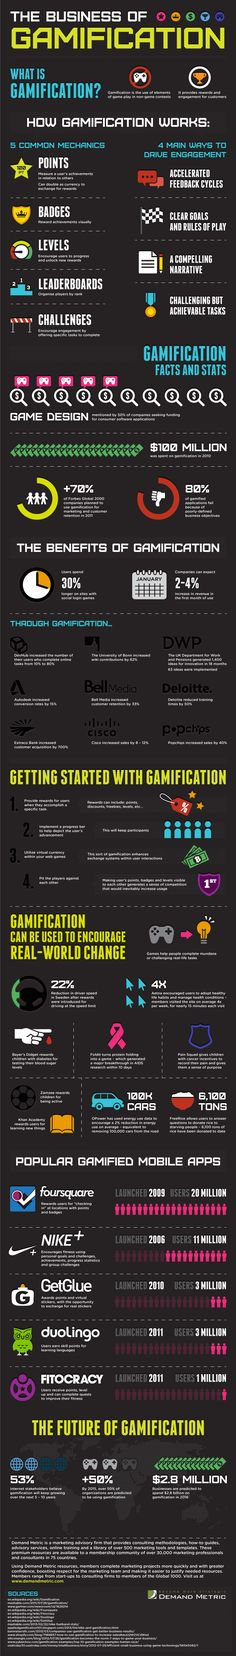 What is Gamification or Applied Game Design? #AppliedGameDesign